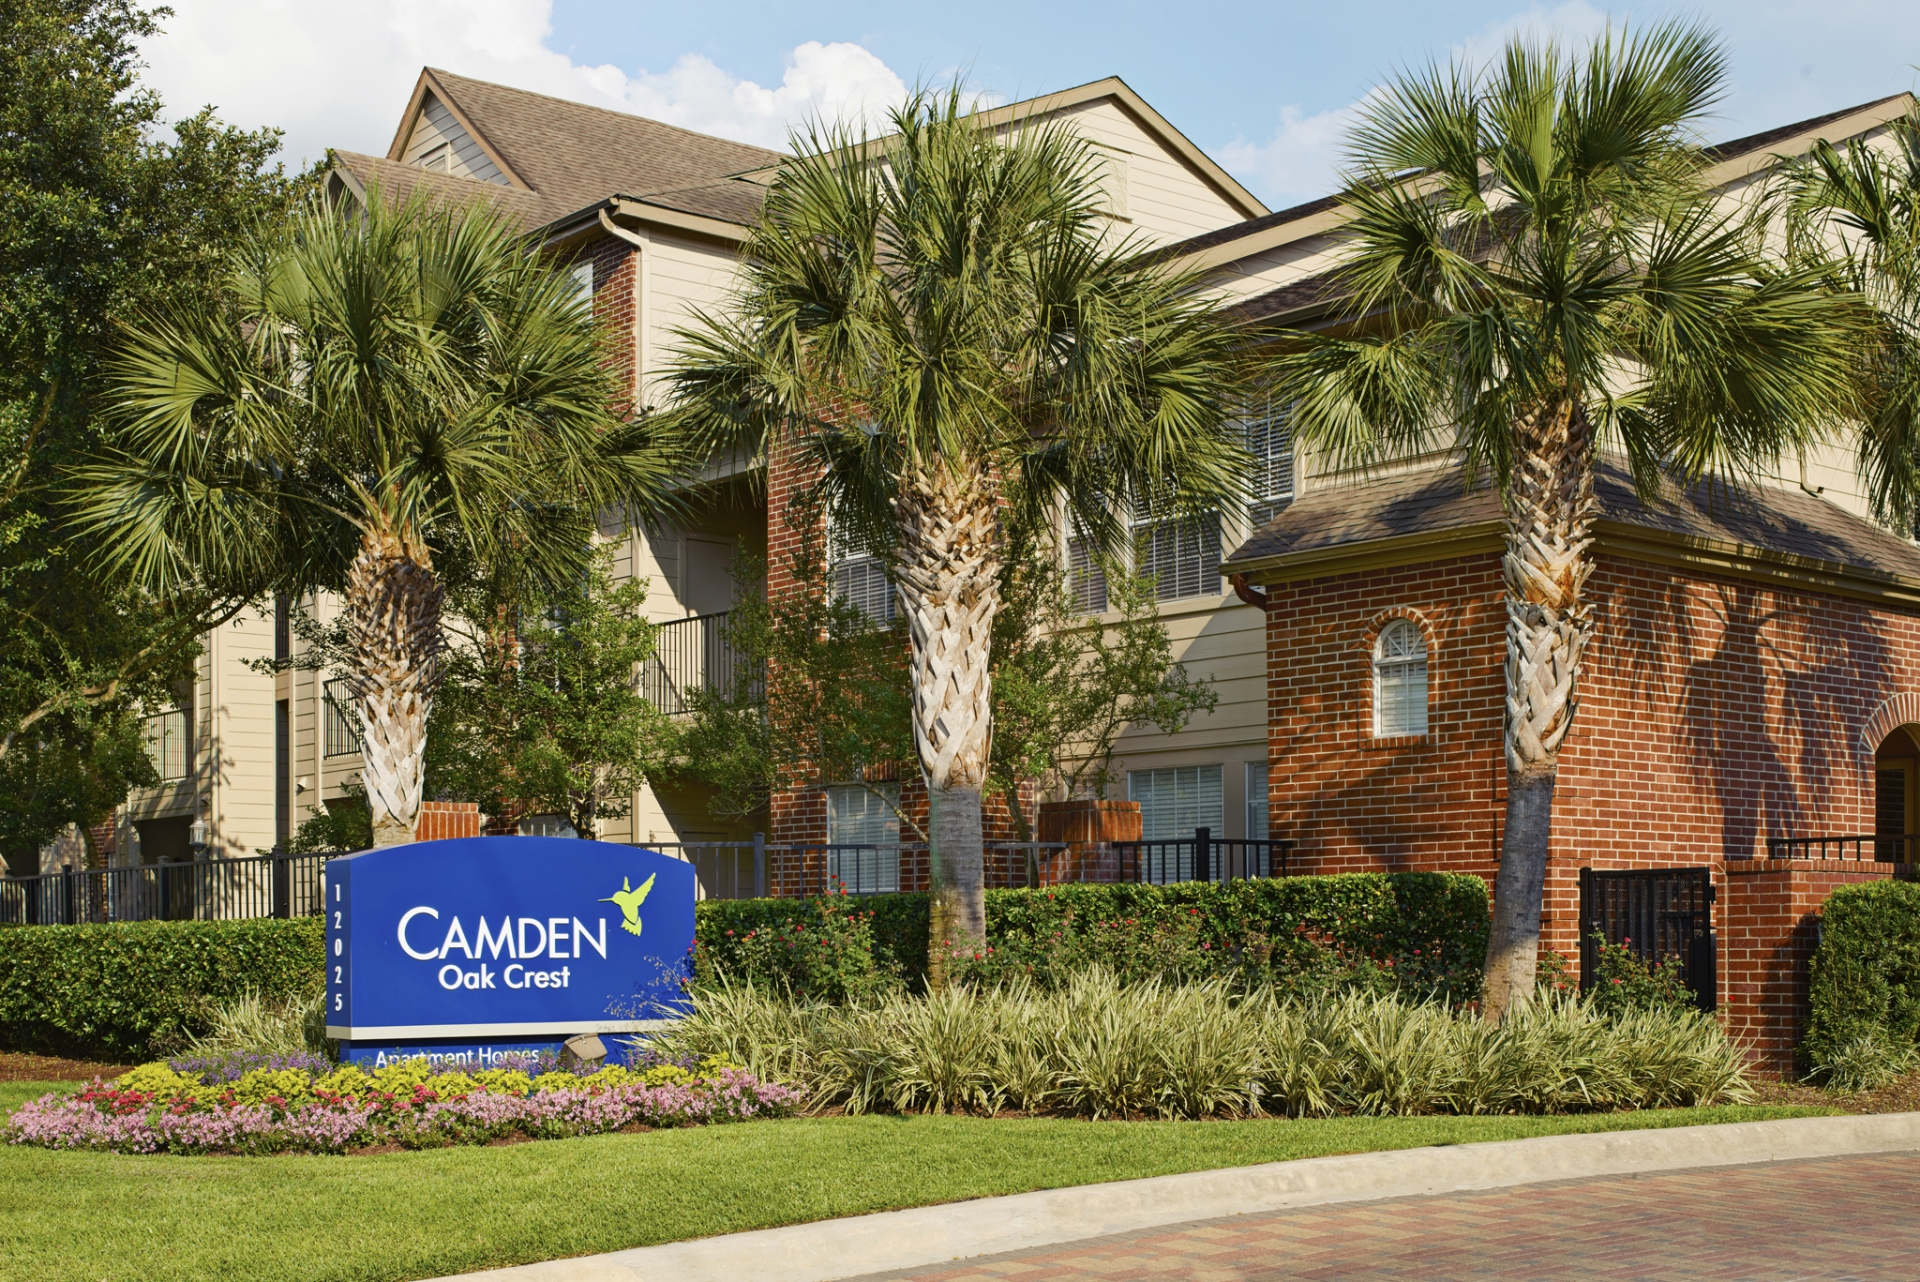 Camden Oak Crest Apartments image 0